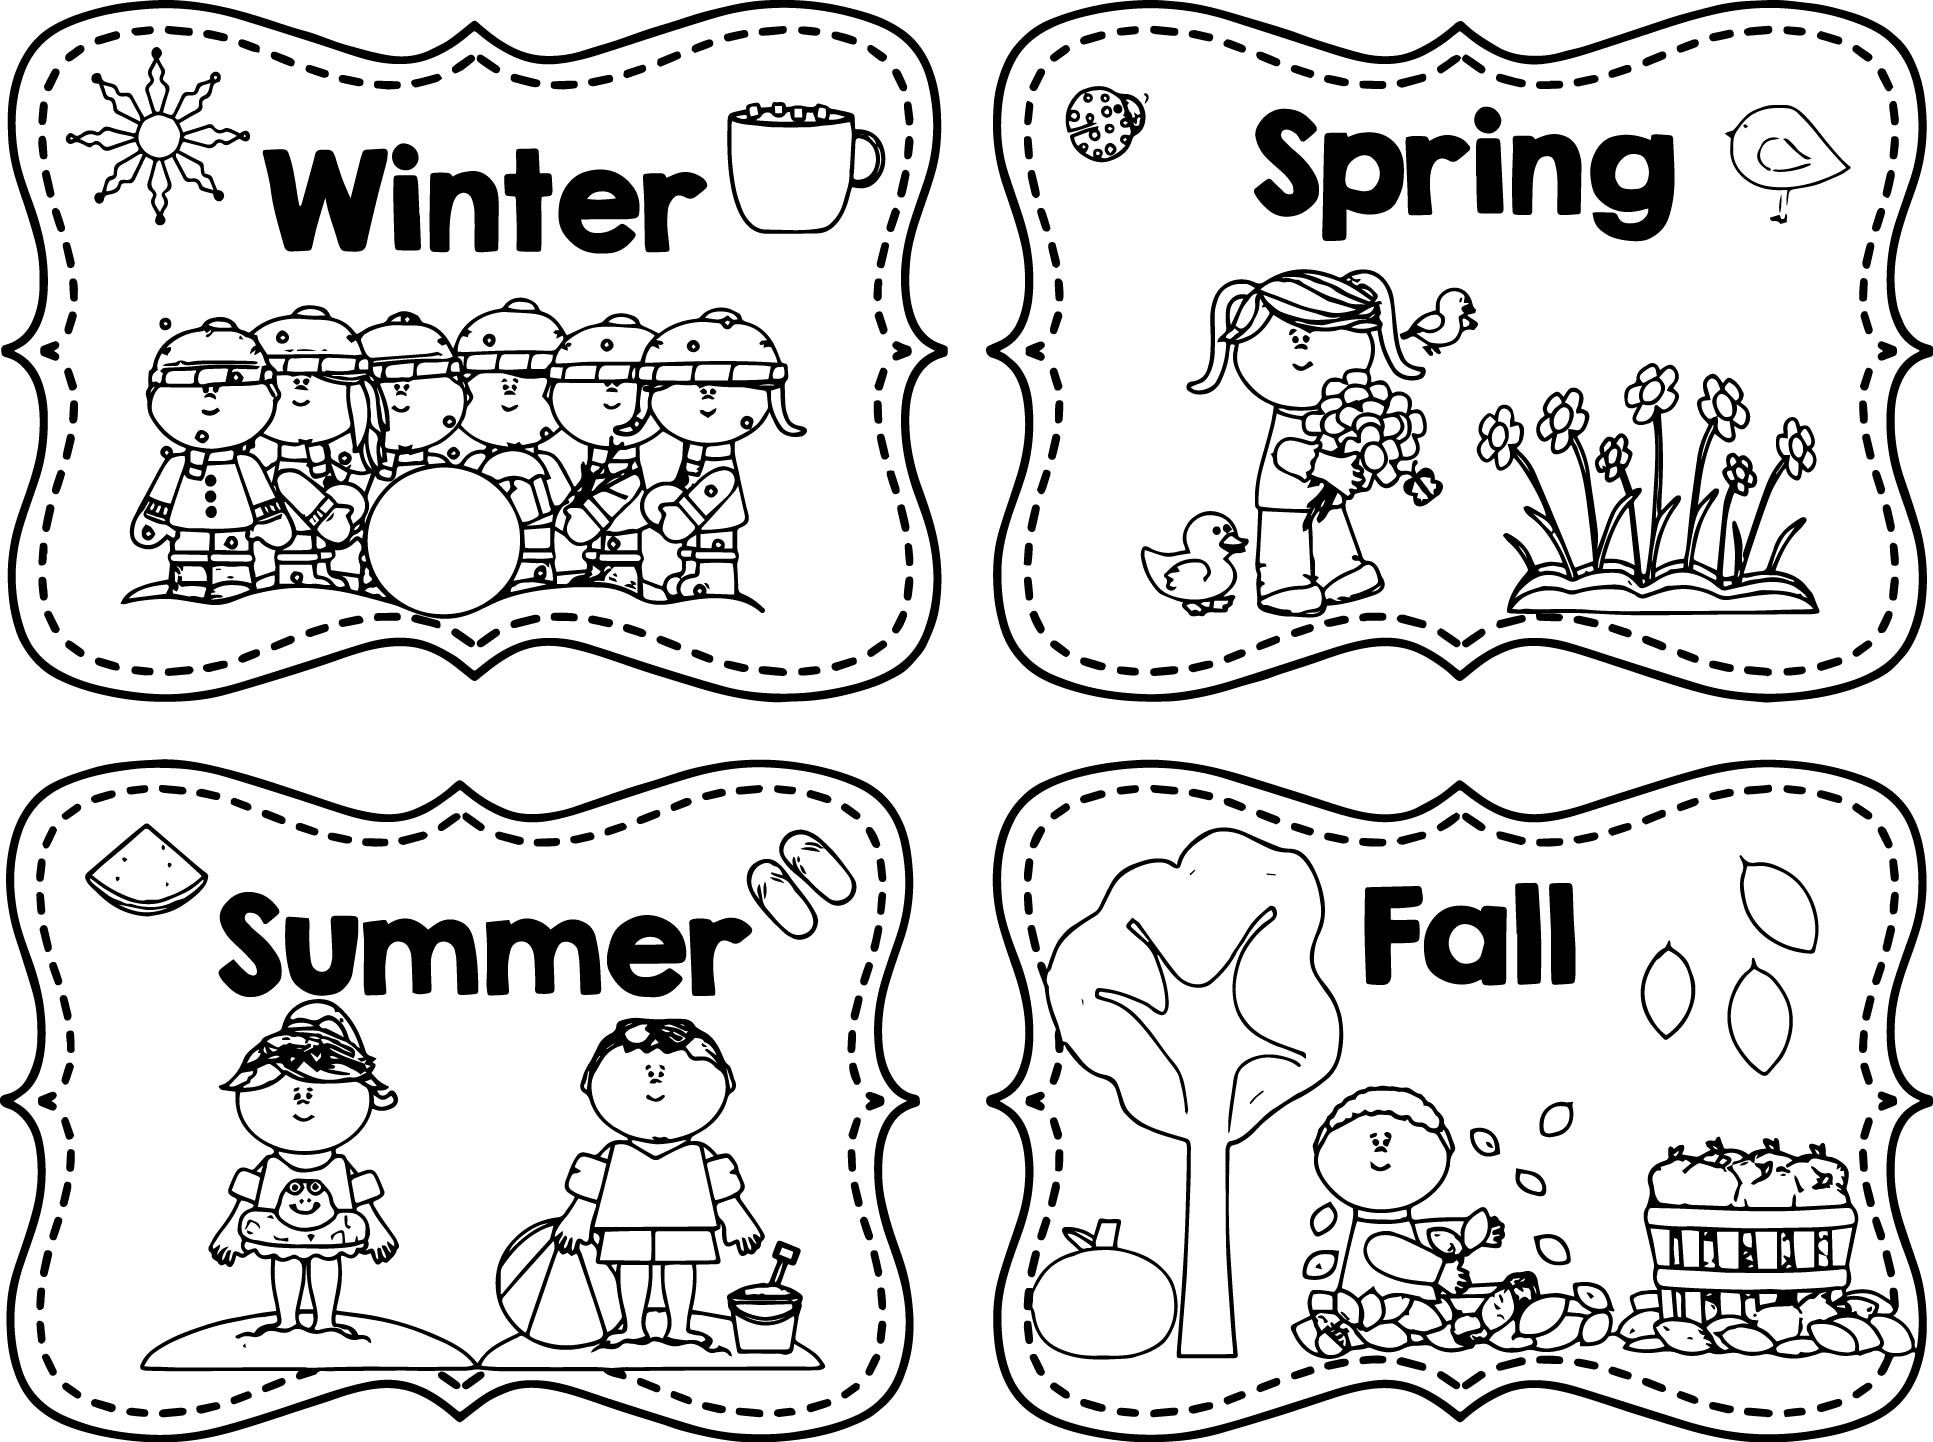 Winter Spring Summer Fall Coloring Page Atividades De Estacoes